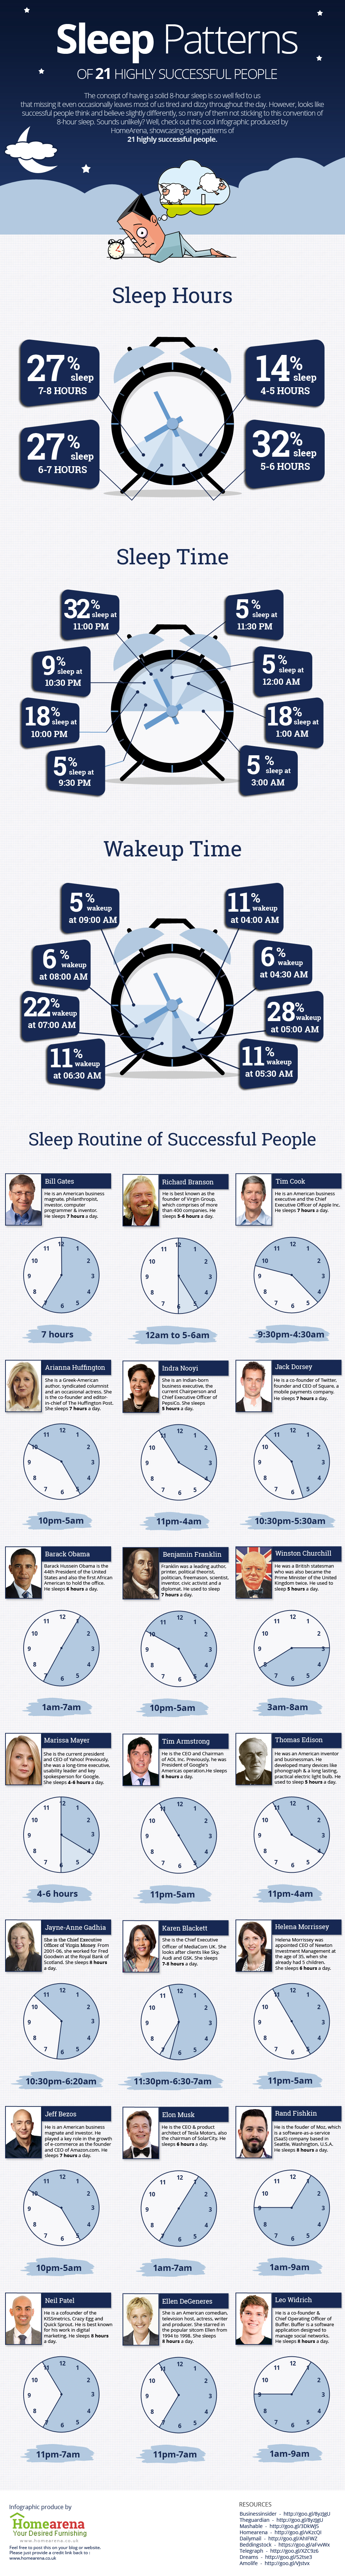 Sleep-patterns-of-highly-successfull-people